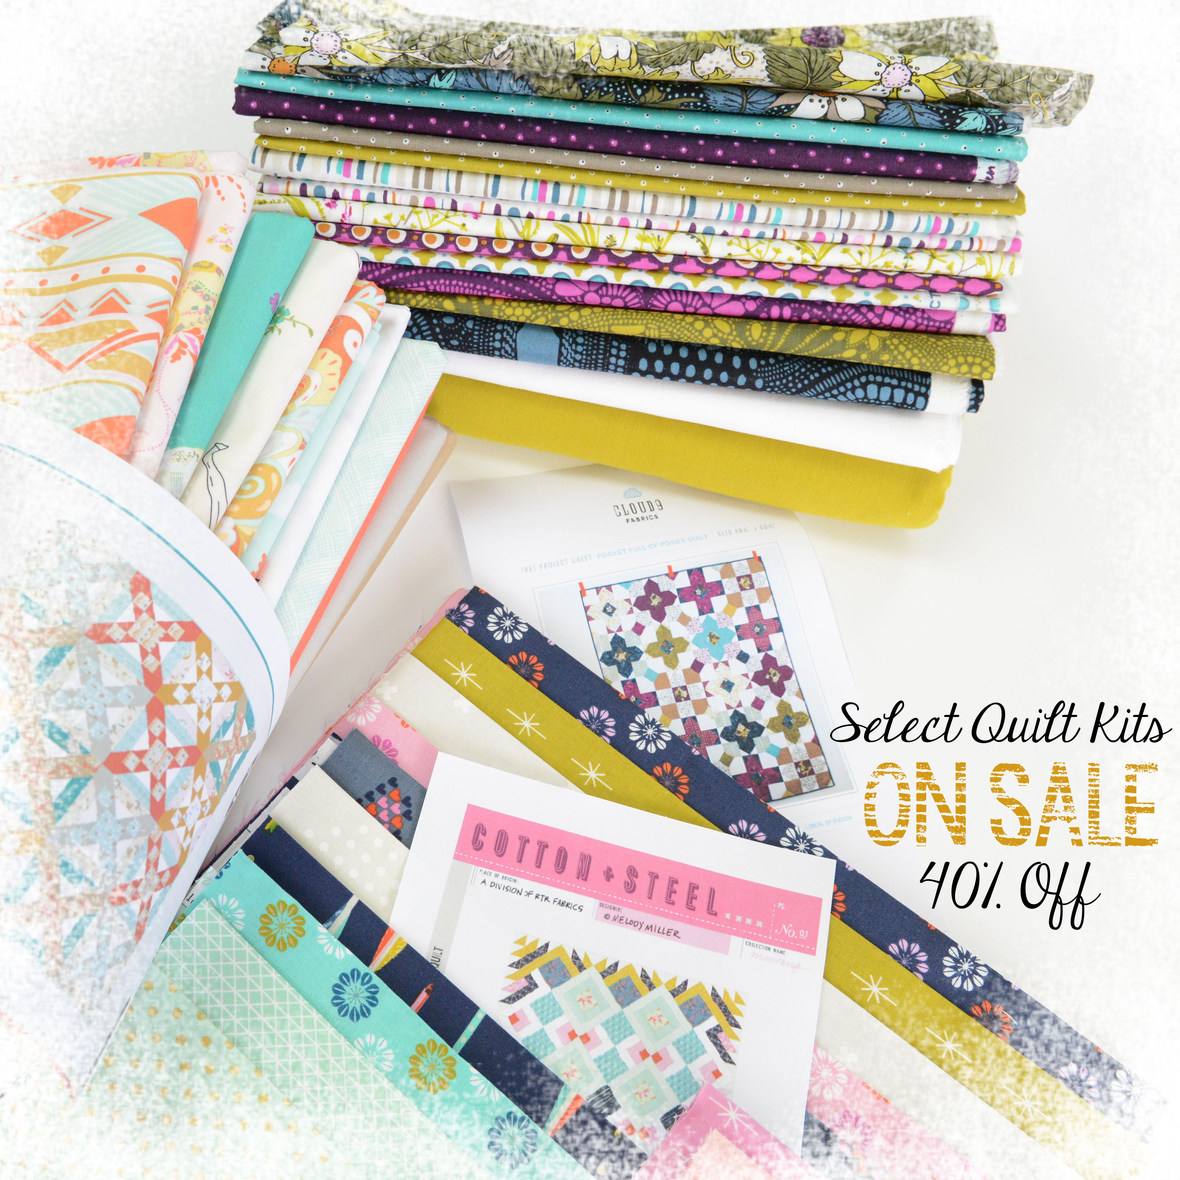 Quilt Kits On Sale with frosty border